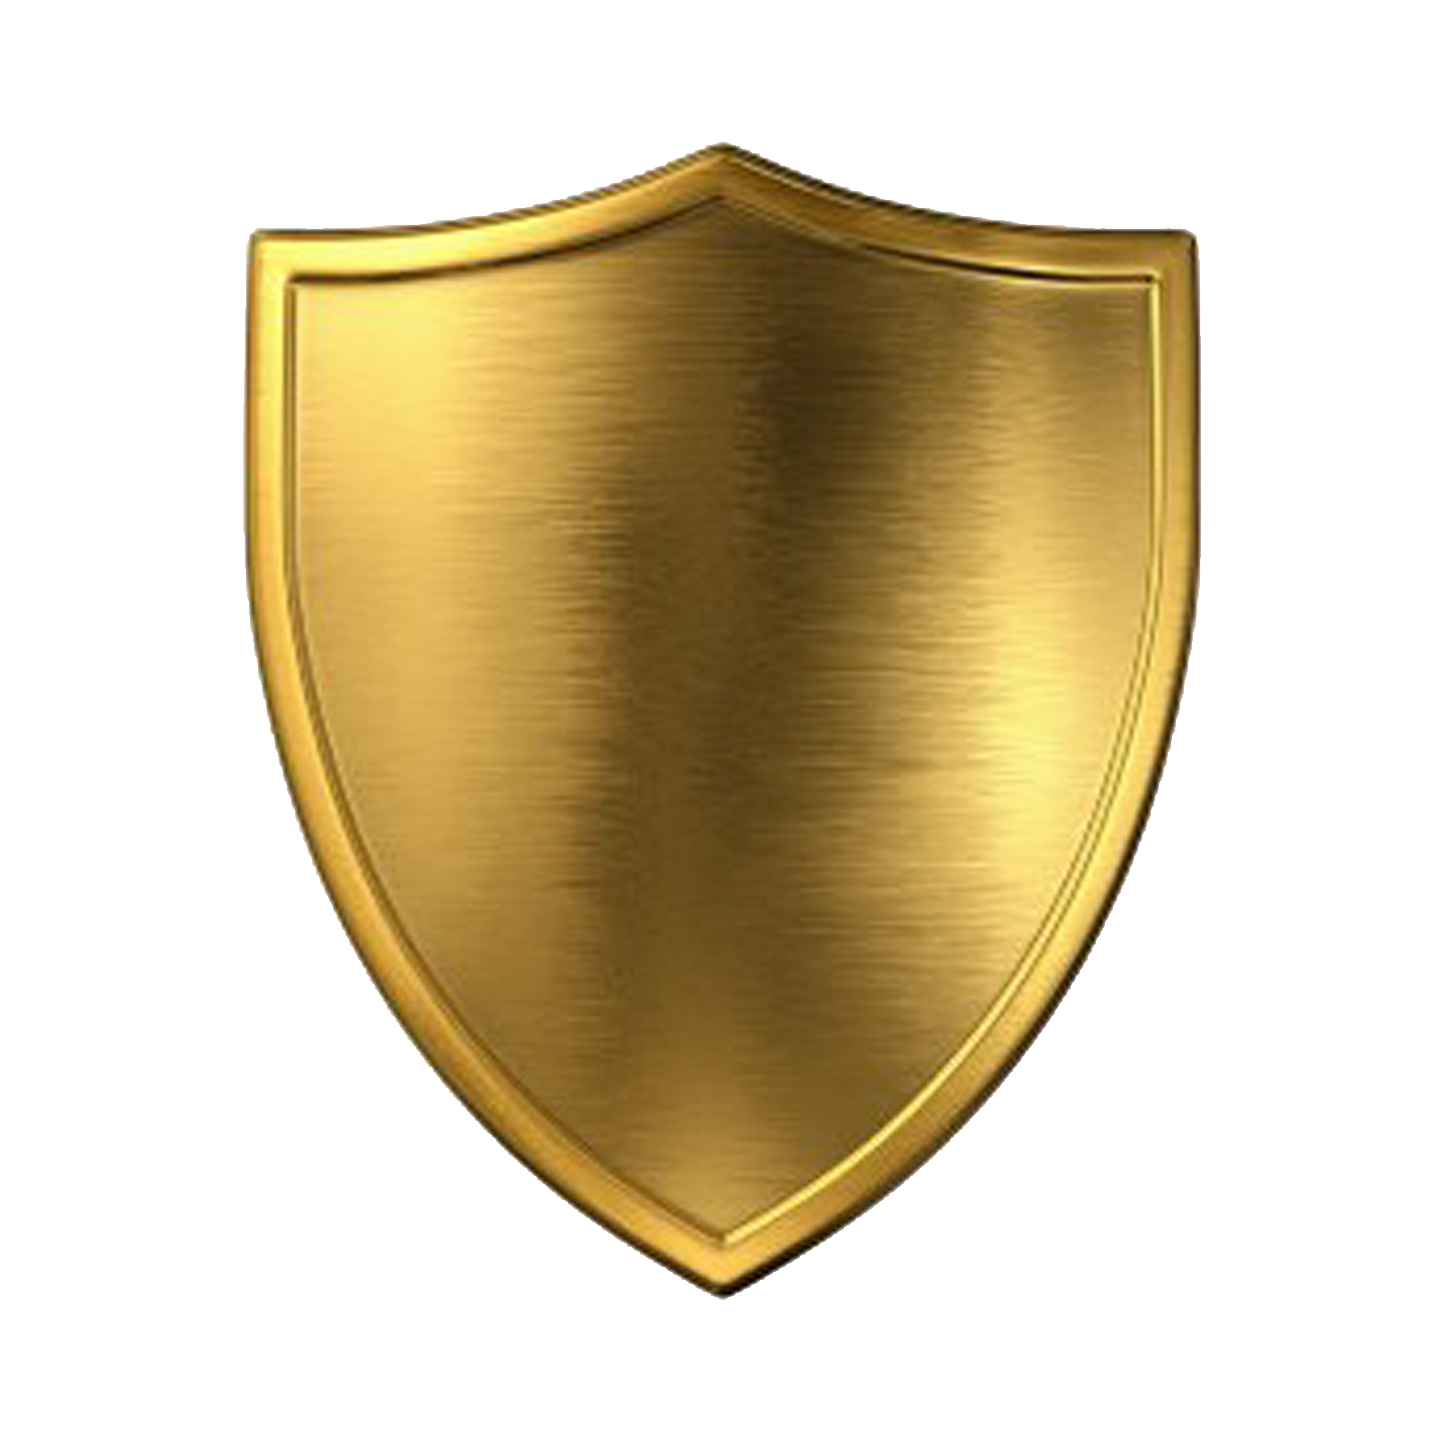 Brown clipart shield Shield Png Clipart Outline Shield